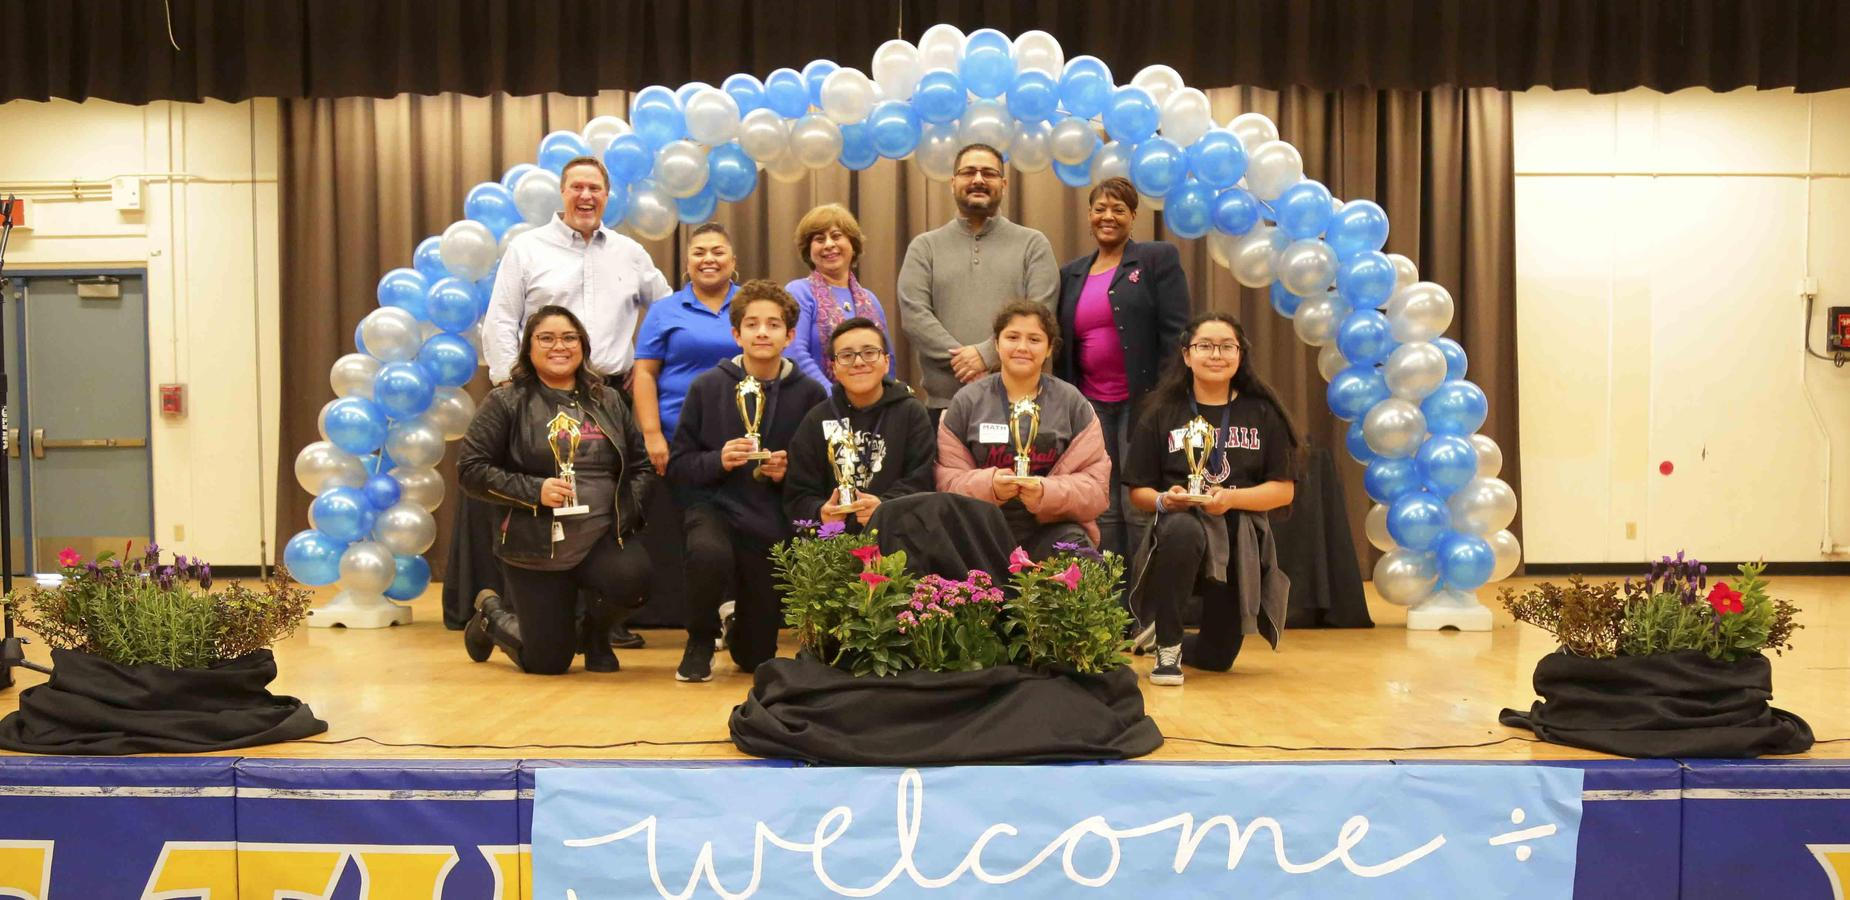 Marshall 7th Grade students take 2nd Place at the Math Field Day - Congratulations to all of our Mustangs that won 2nd Place at the Math Field Day held at Garey High School. We are proud of your academic success! #proud2bepusd http://edl.io/n1149162